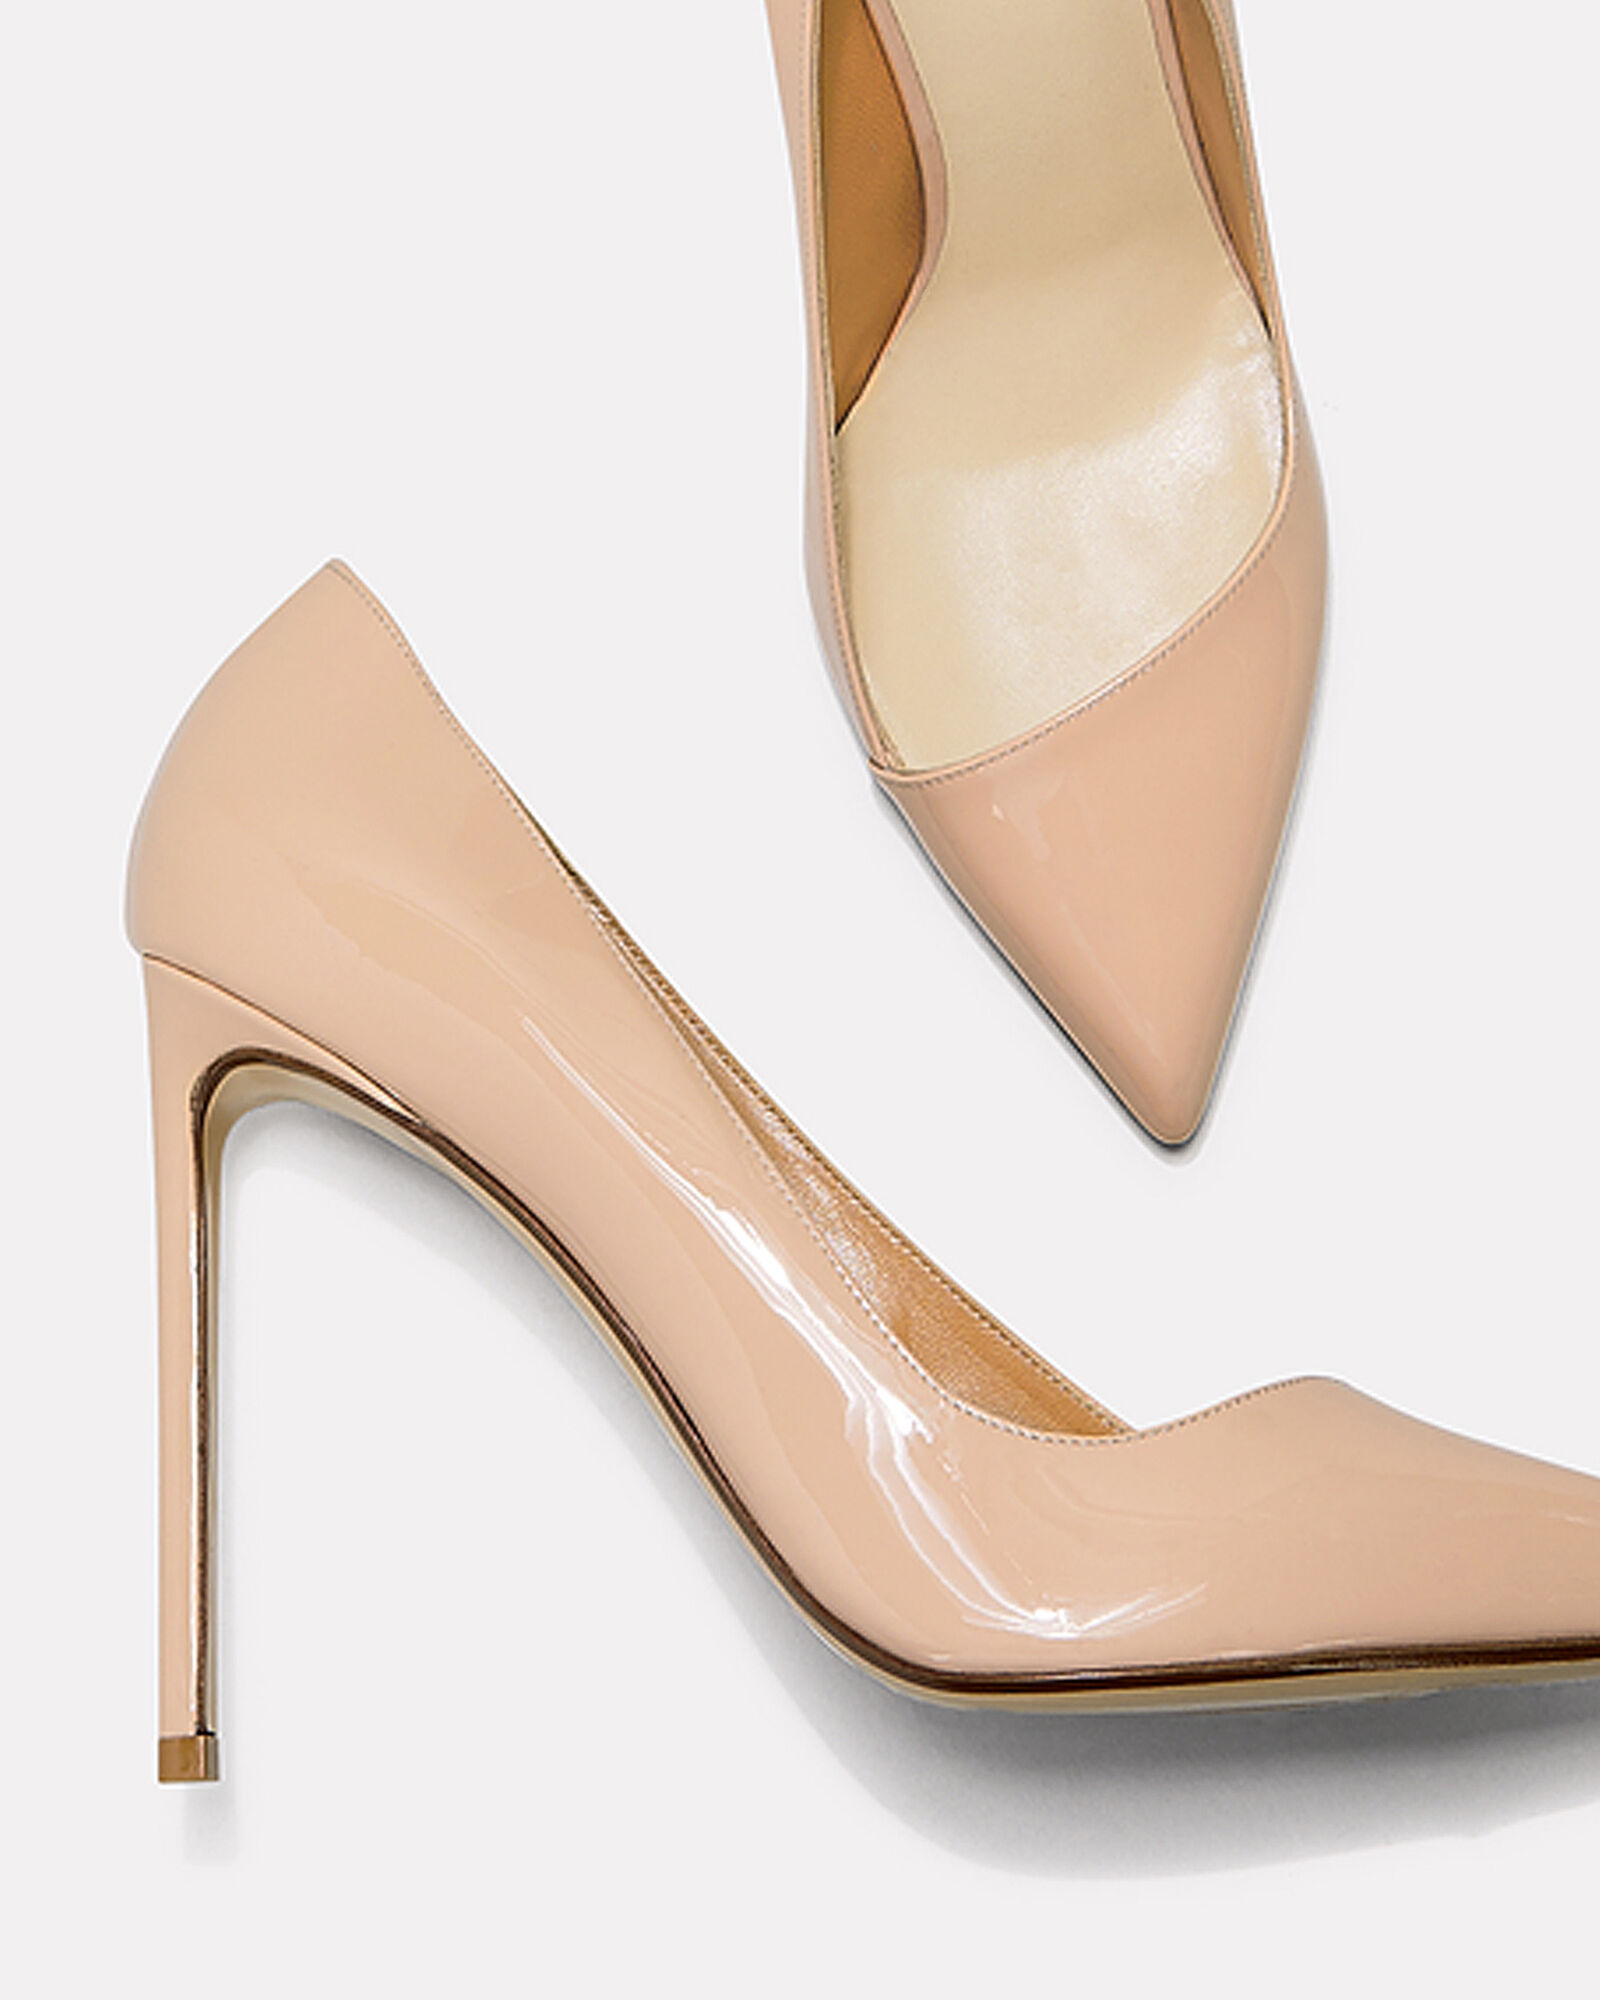 Beige Patent Leather Pumps, BEIGE, hi-res